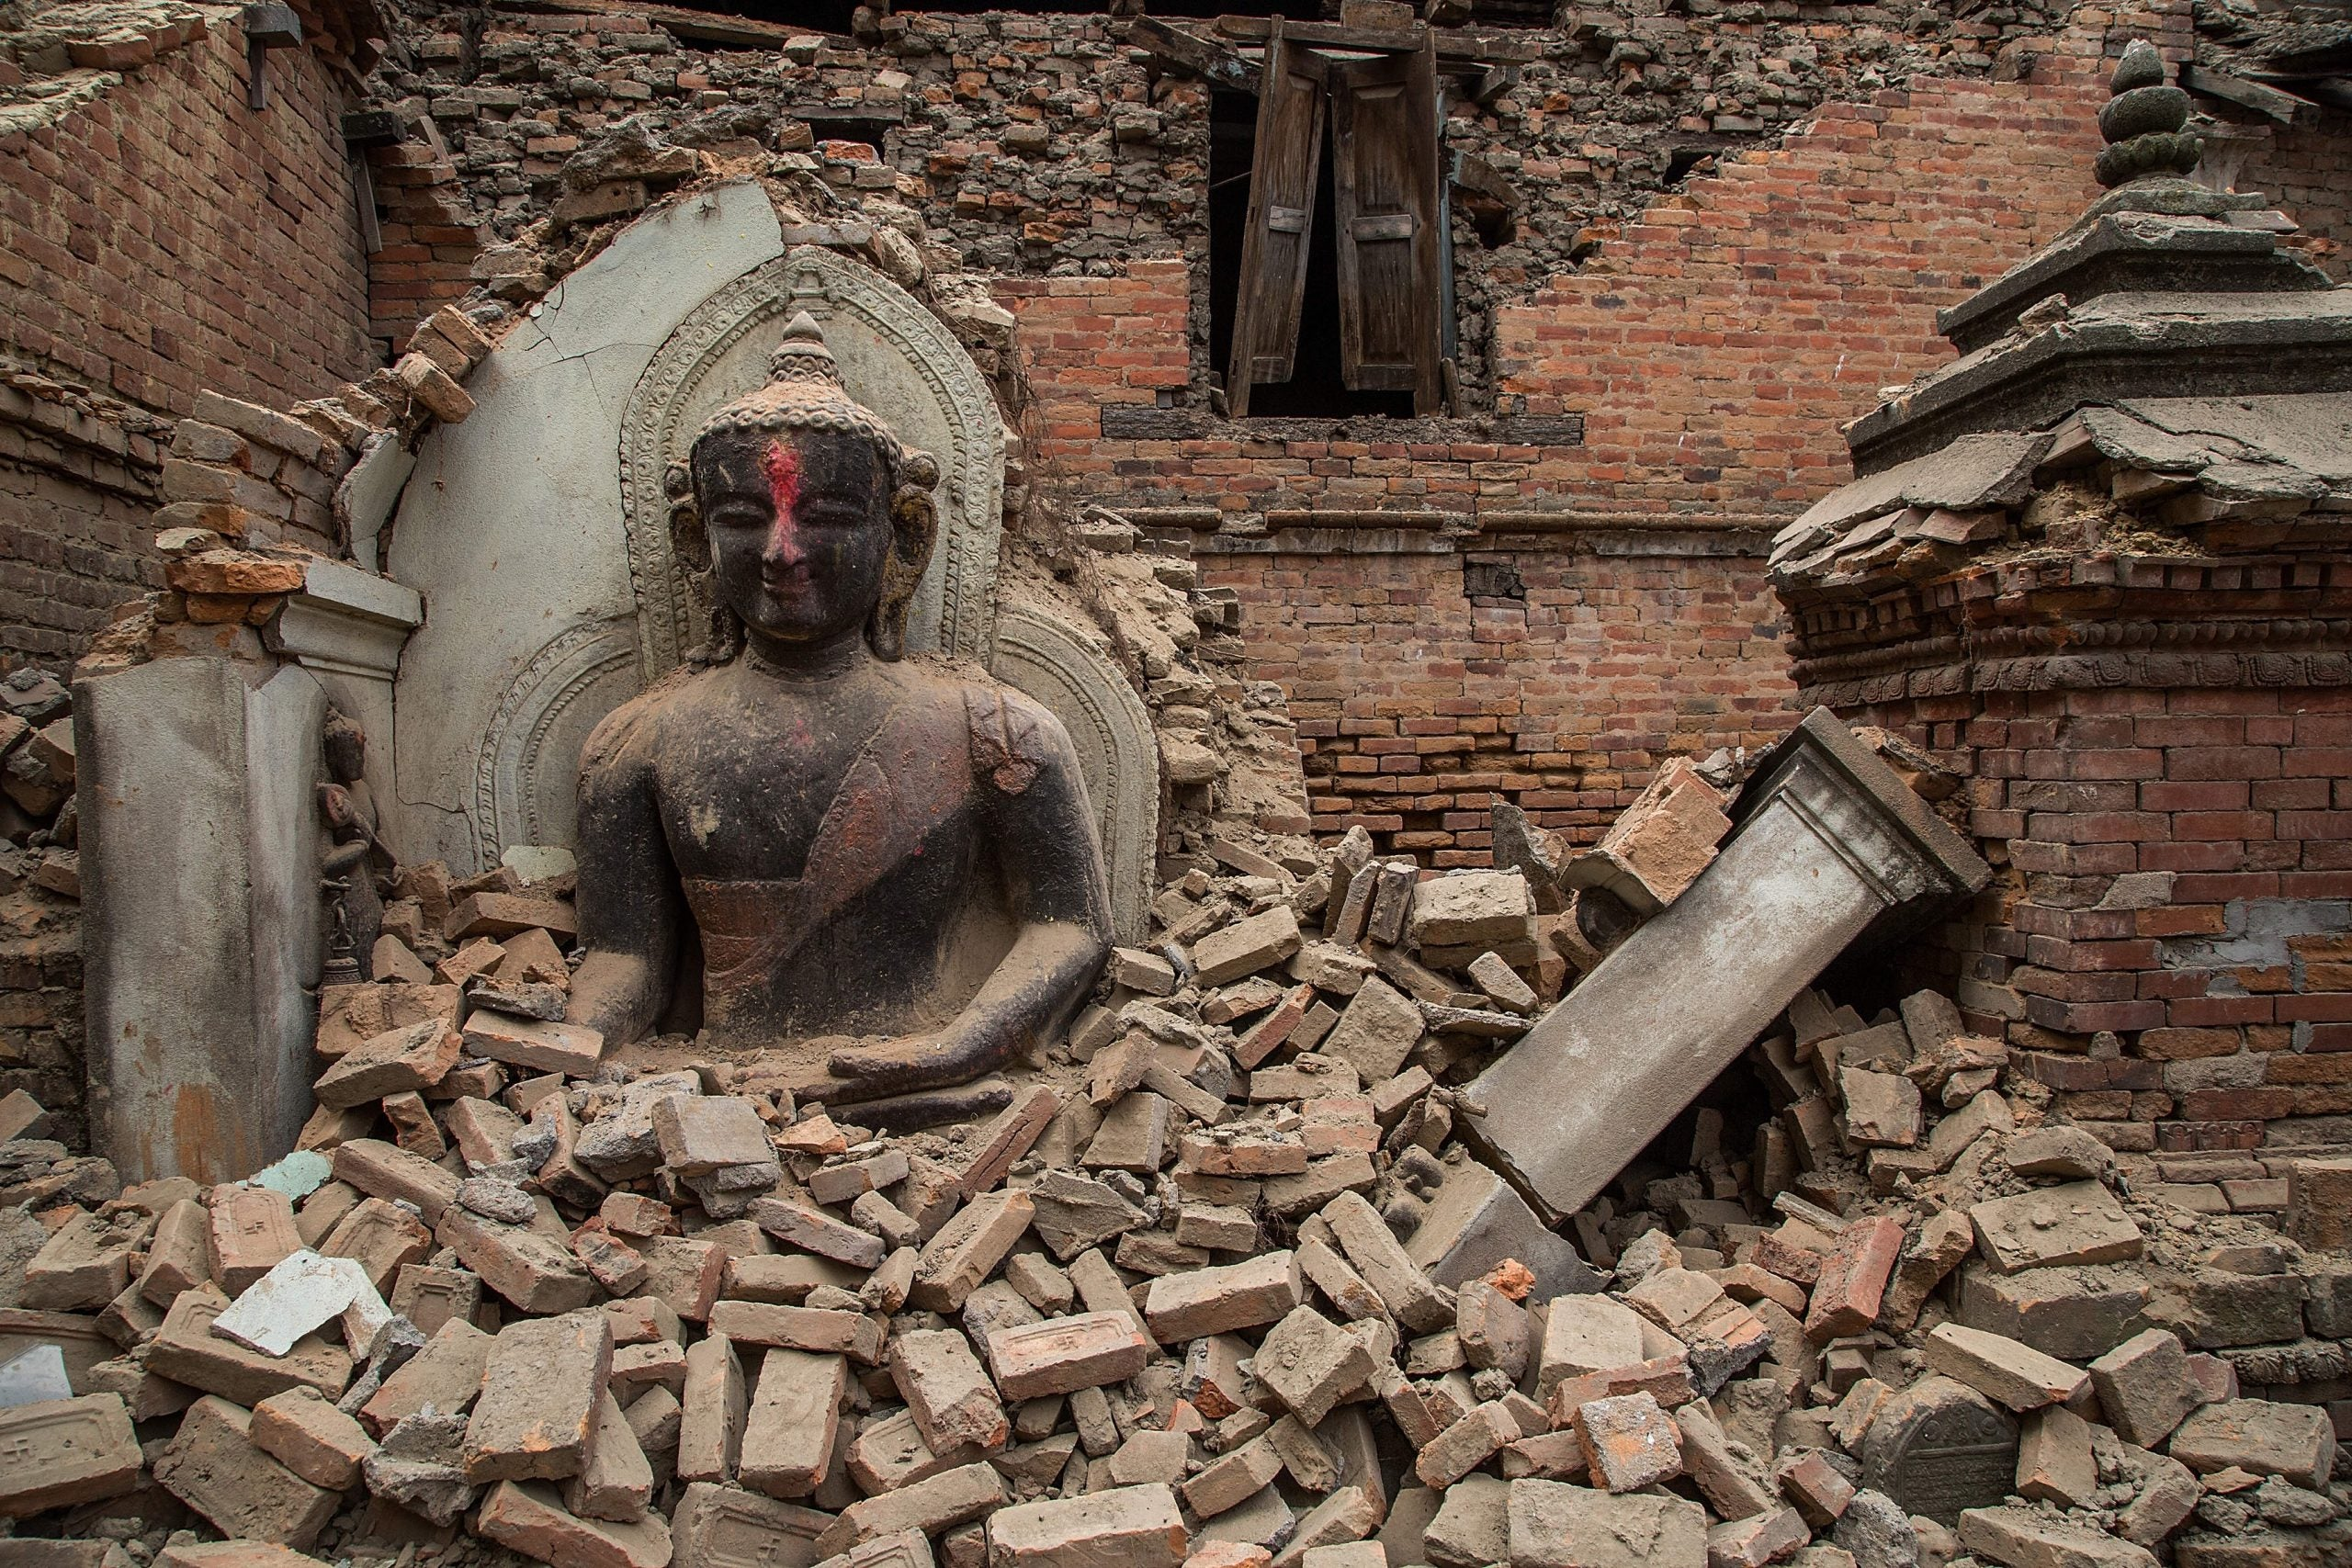 Nepal has become a country that can't see the future – this quake gives us a chance to change that